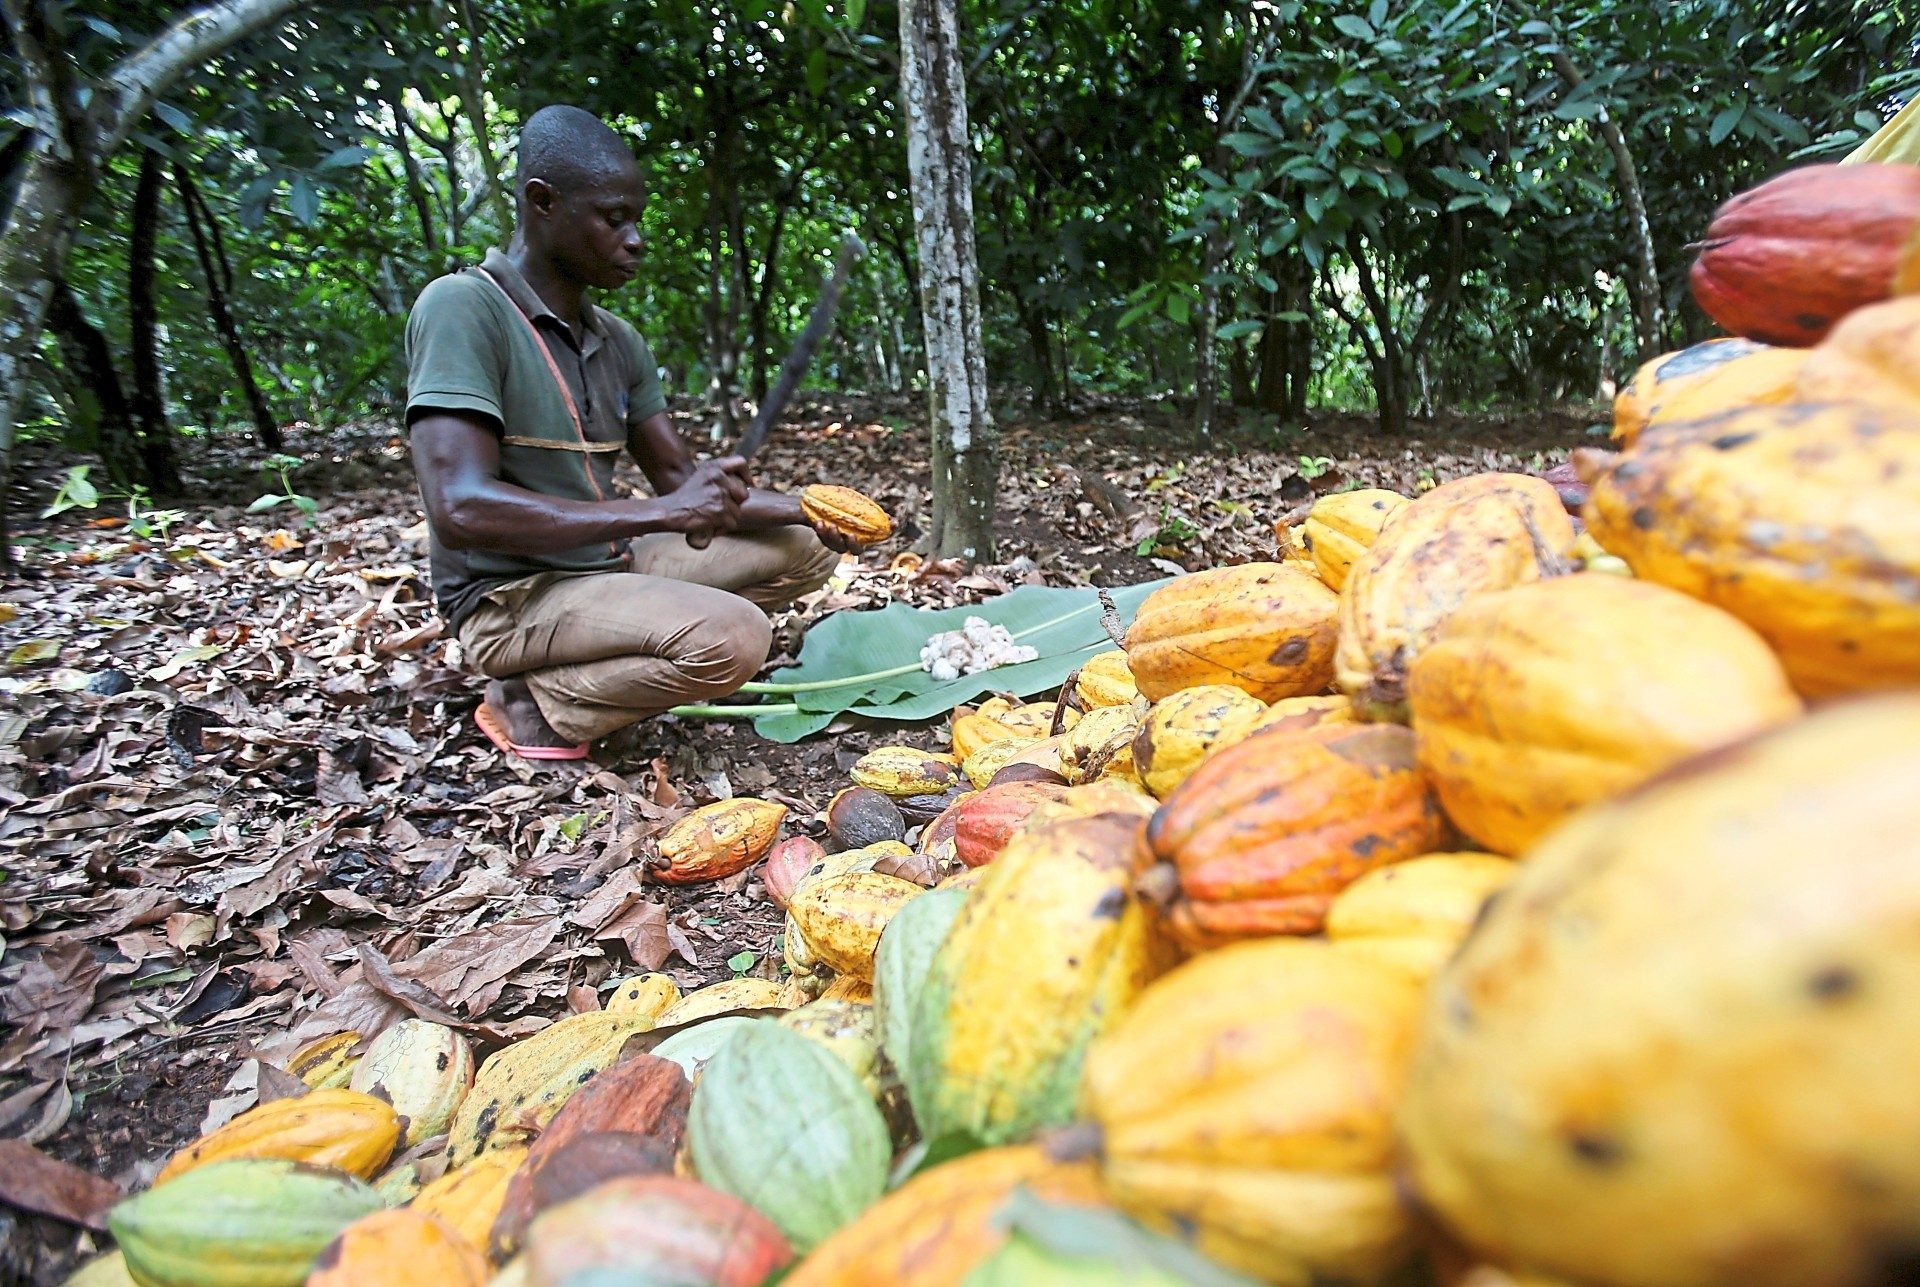 Chocolate makers face ultimatum over pay for poor cocoa farmers